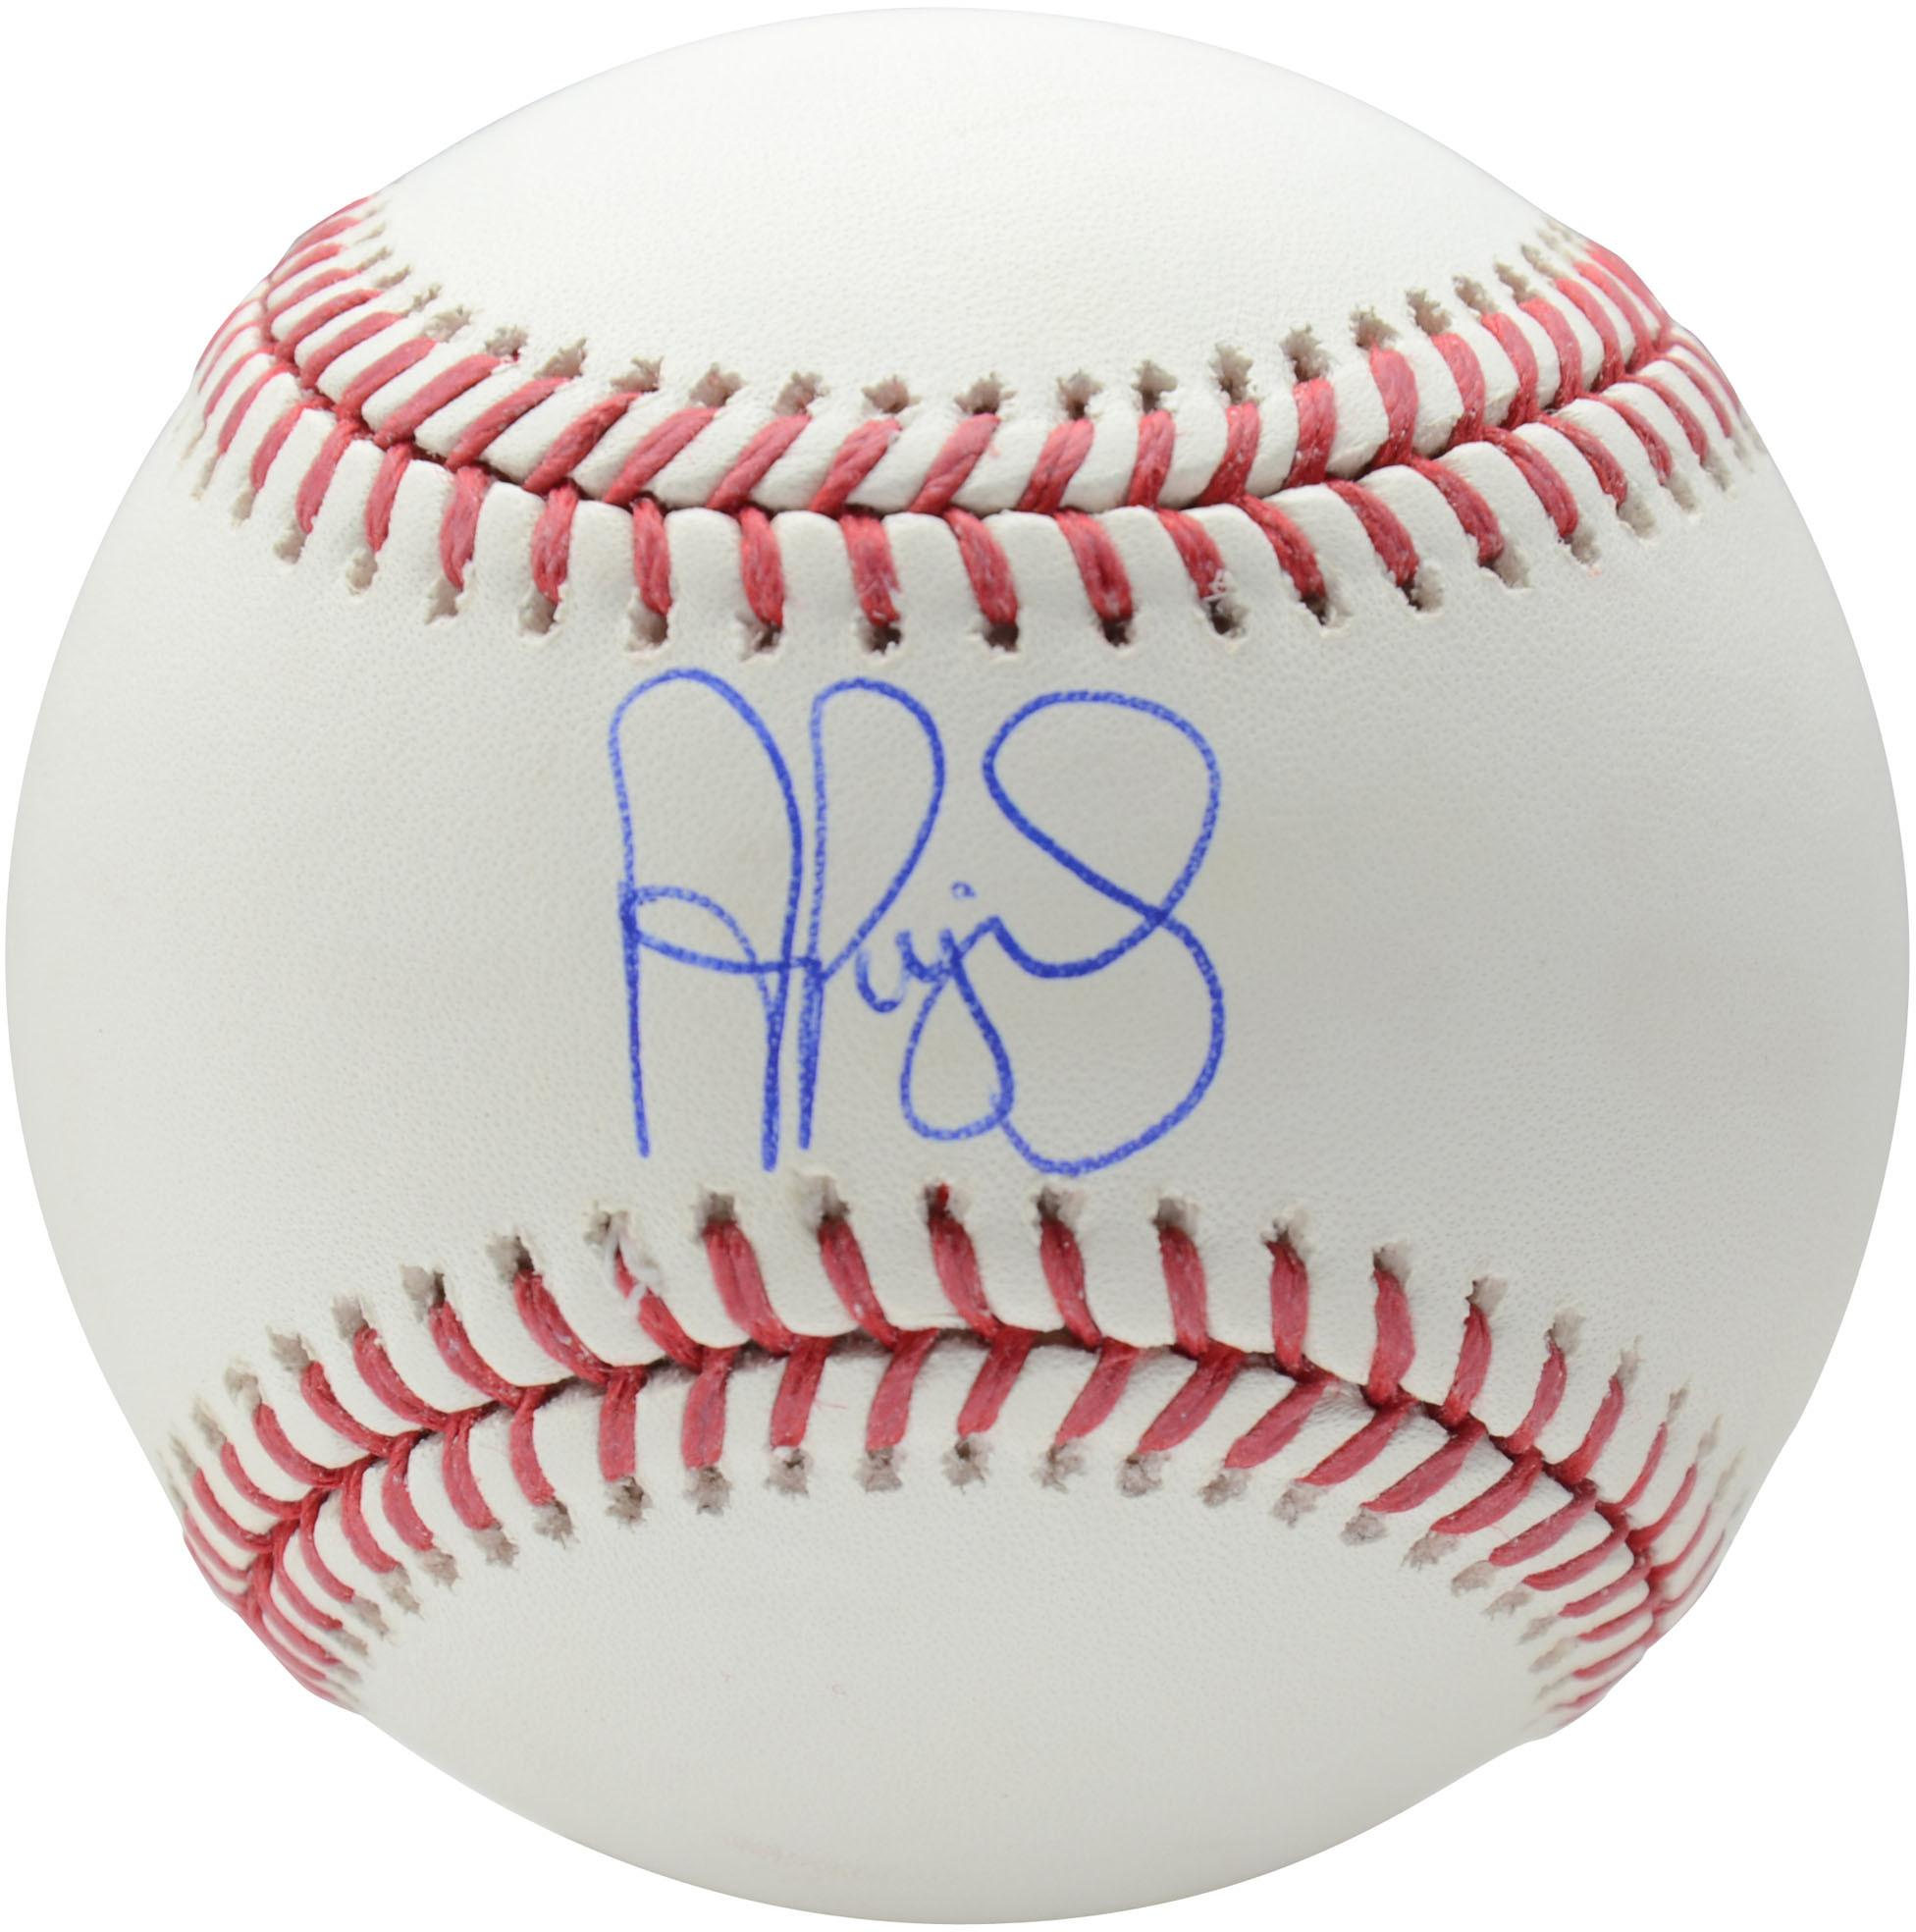 Albert Pujols Autographed Baseball - Fanatics Authentic Certified